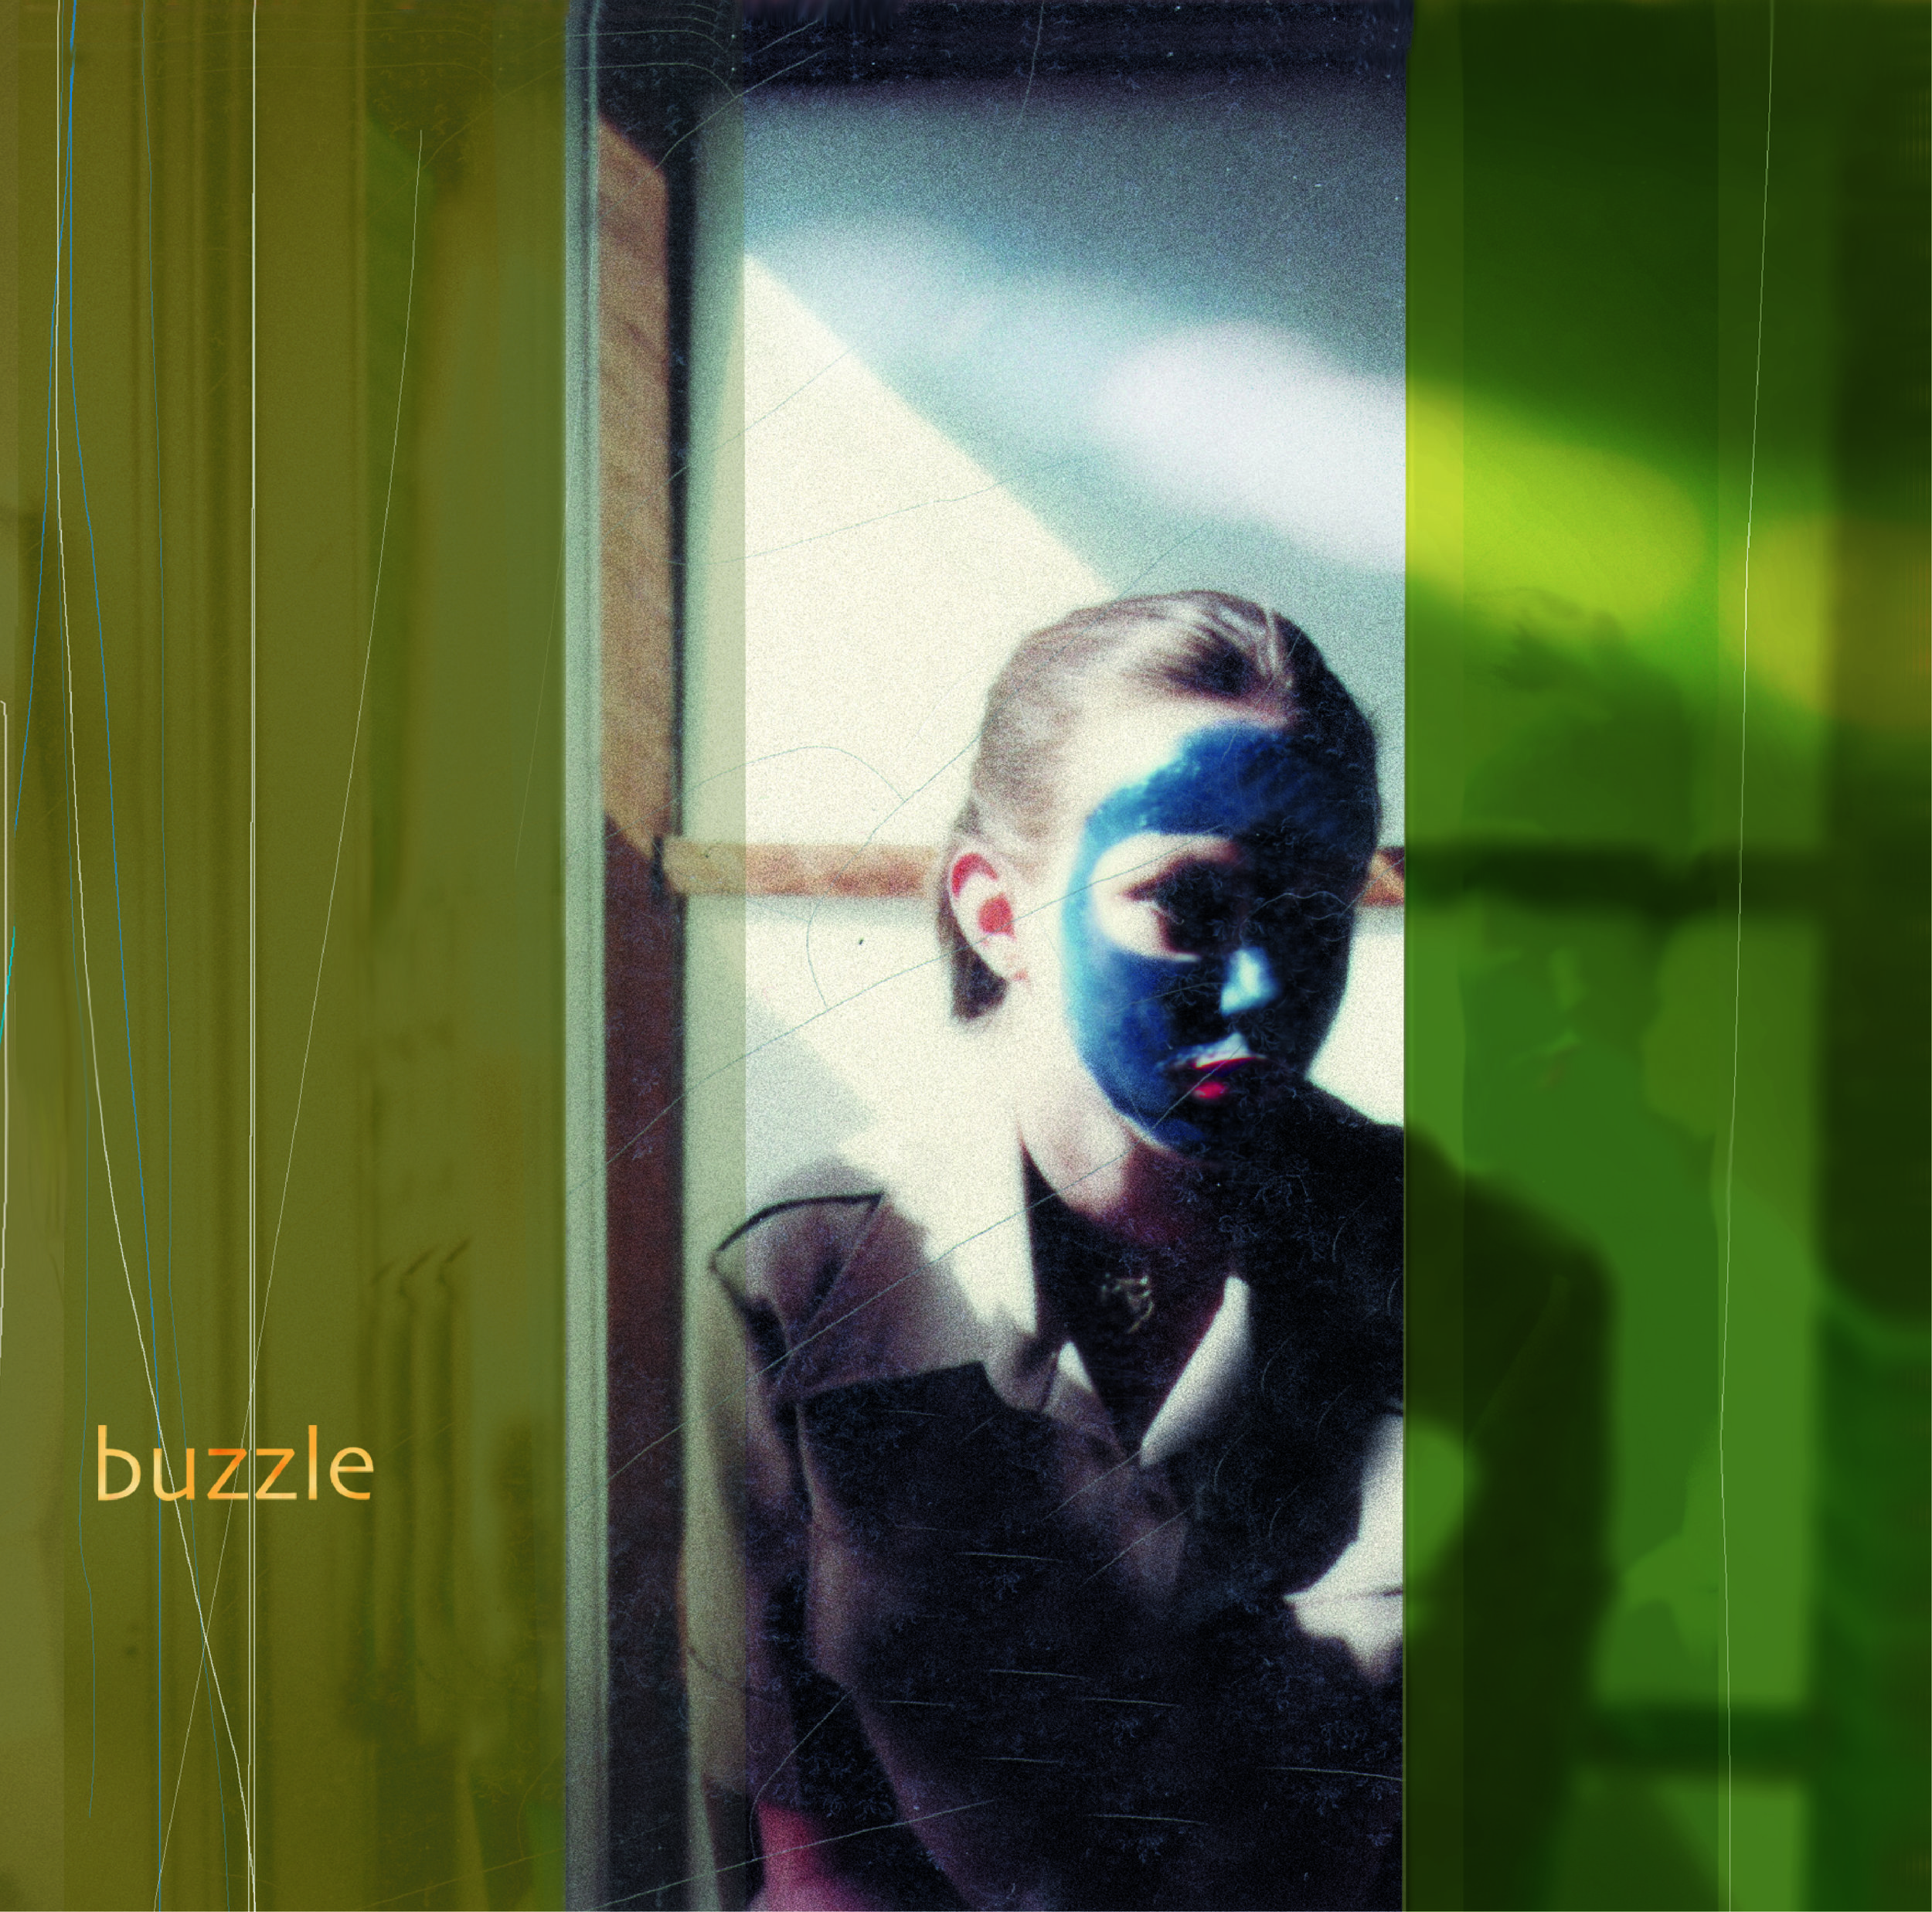 Buzzle Final Cover.jpg